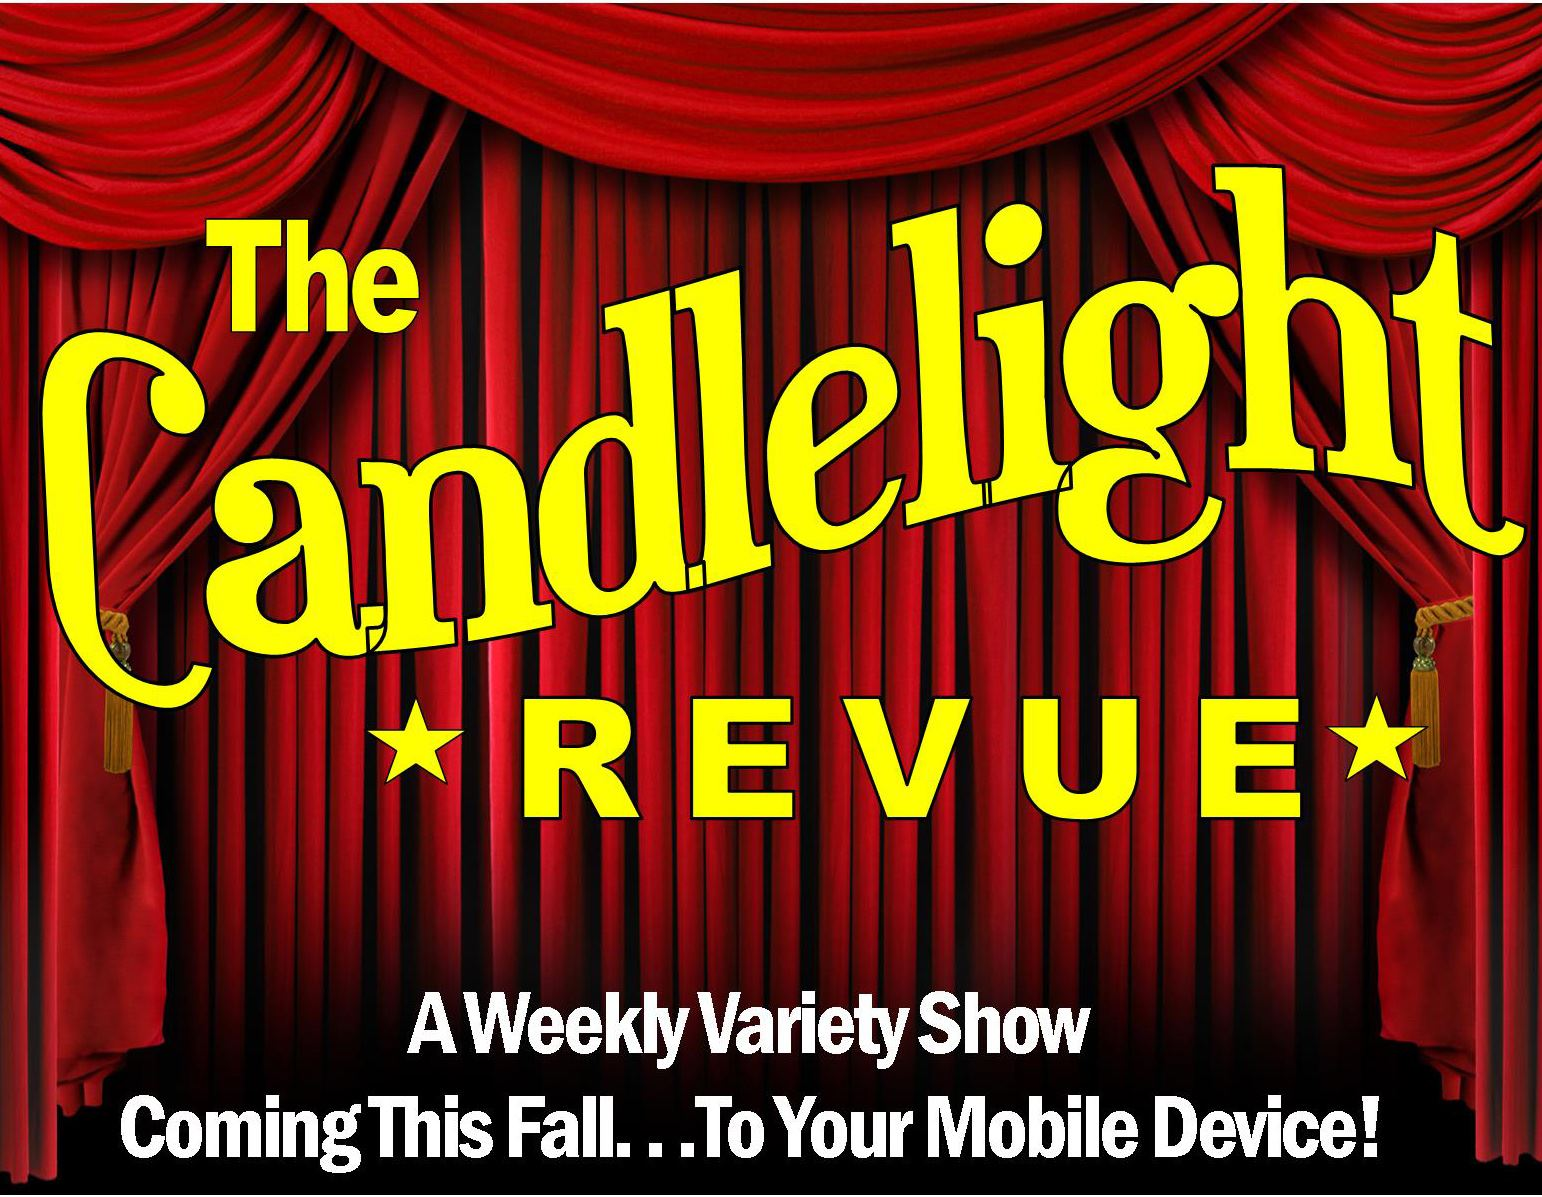 Candlelight Review Ad Card